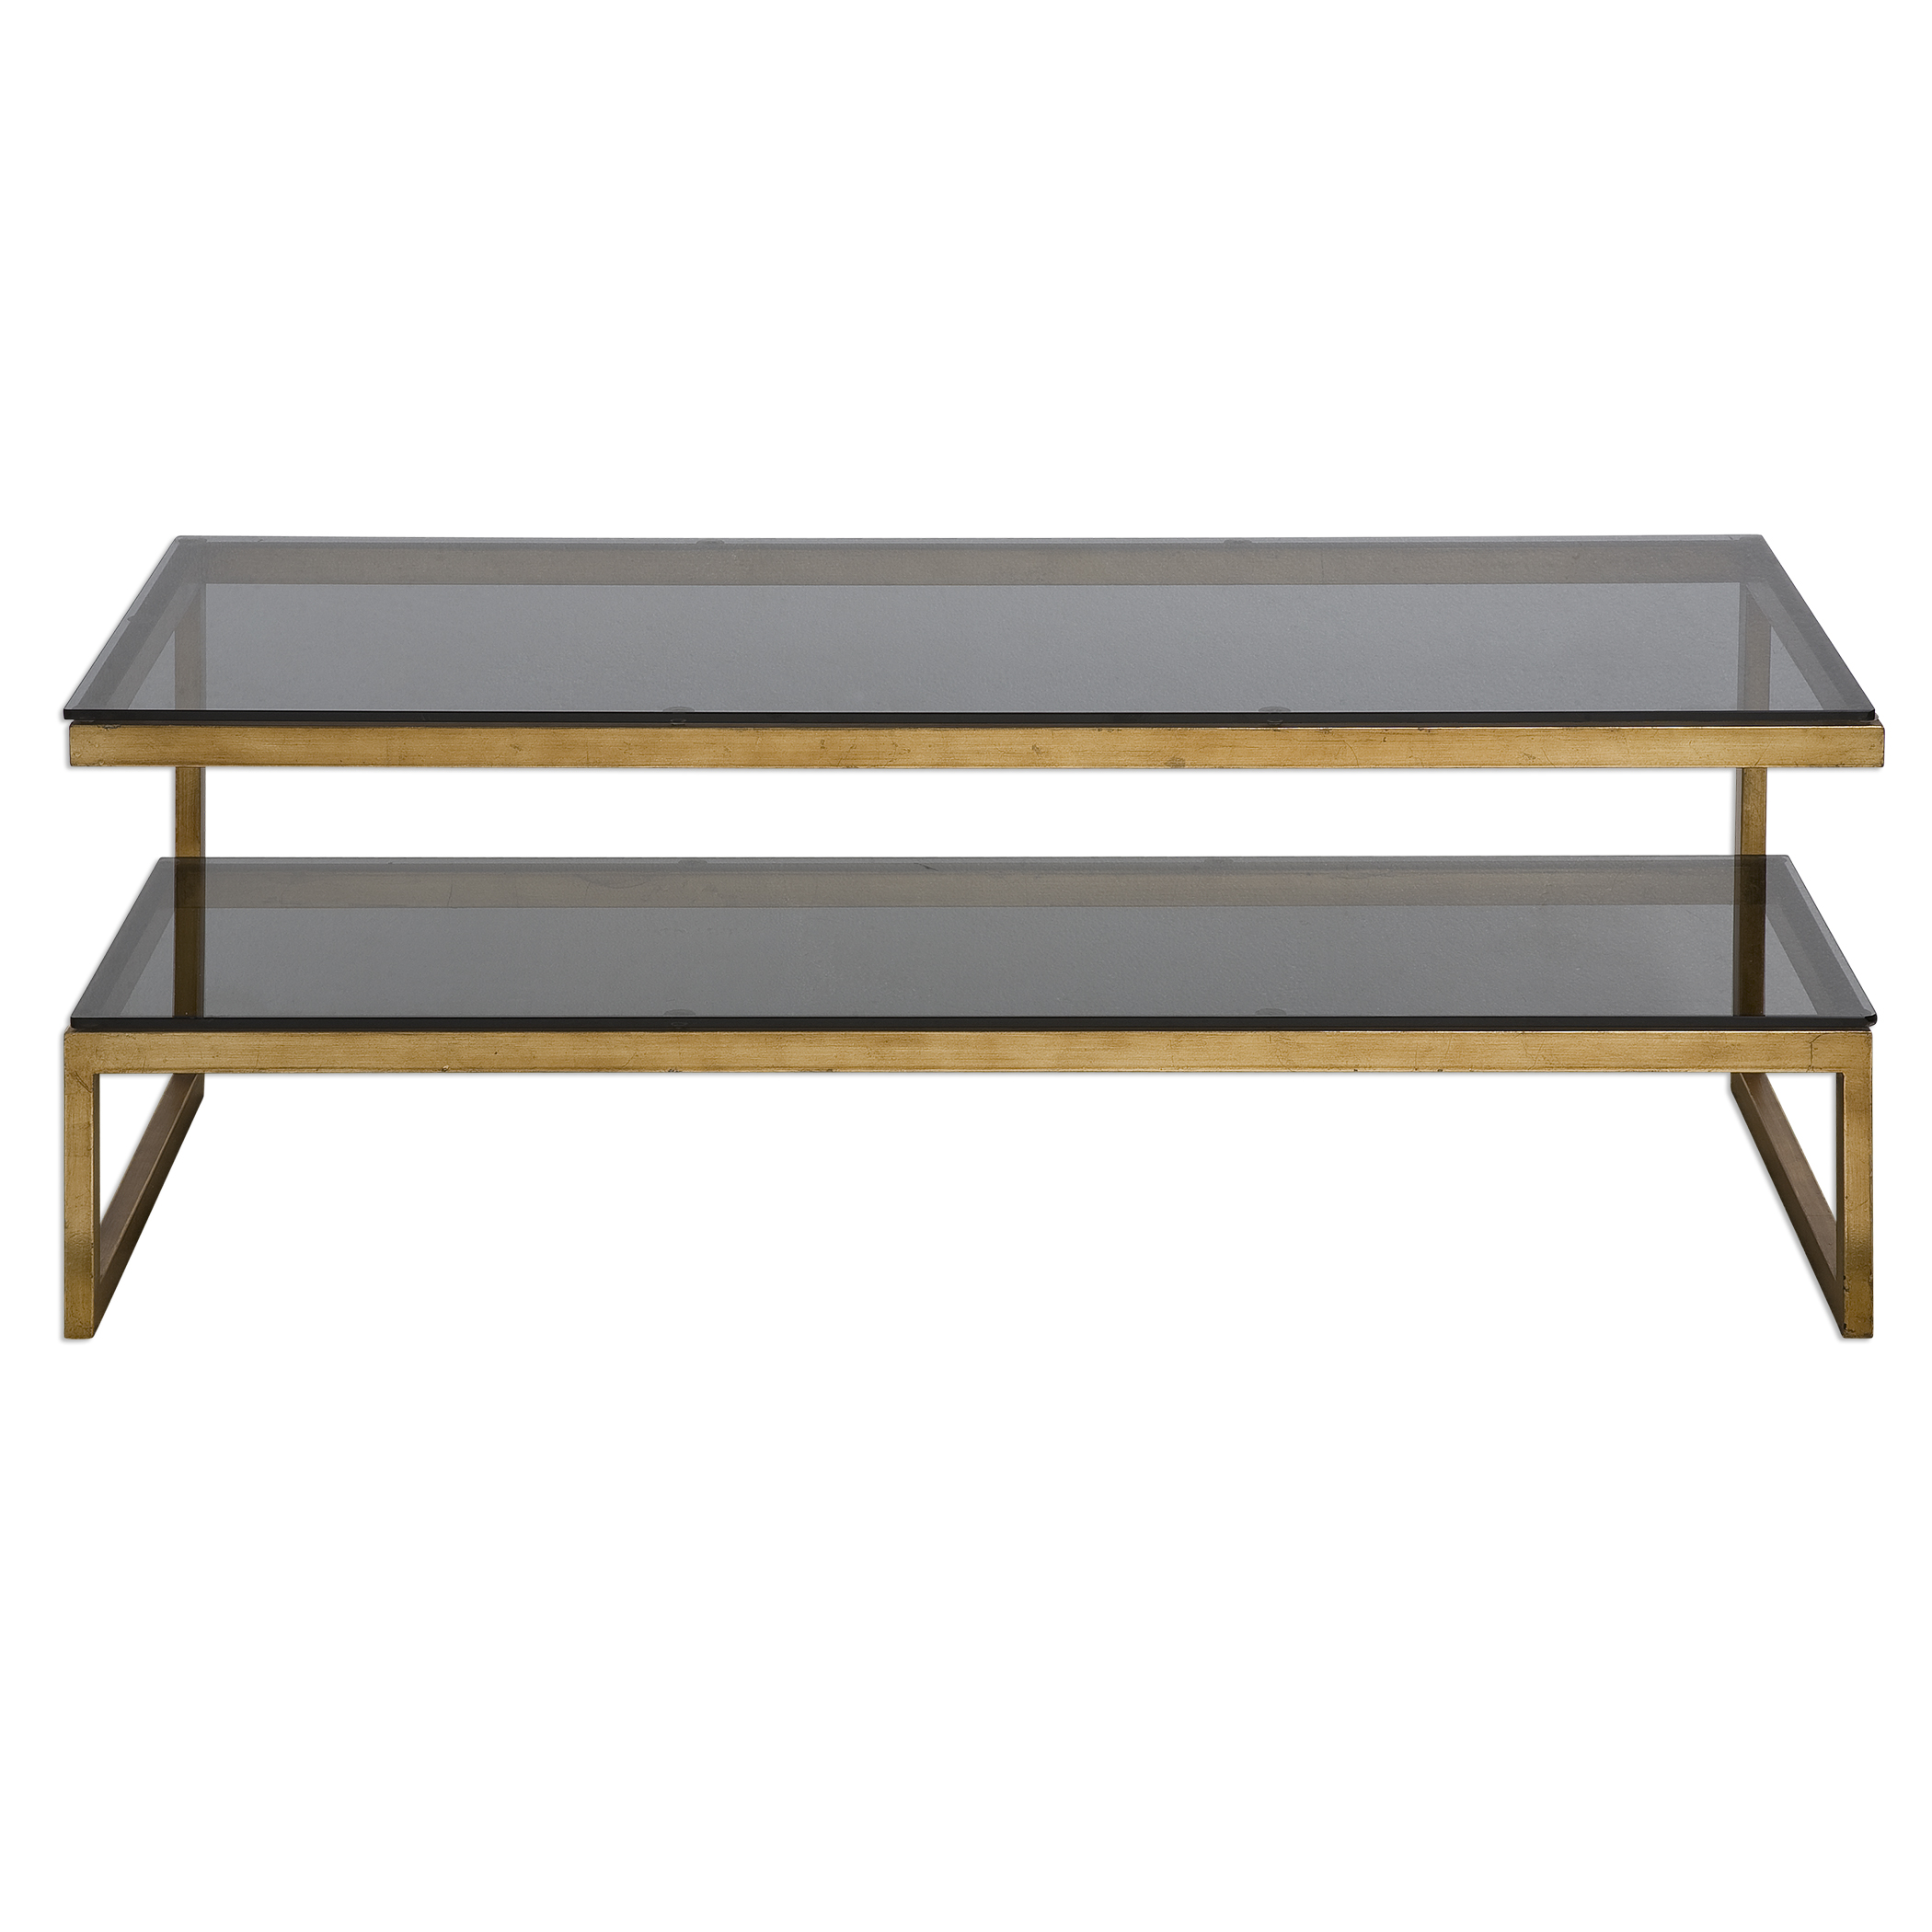 Uttermost Accent Furniture Adeen Glass Coffee Table - Item Number: 24619